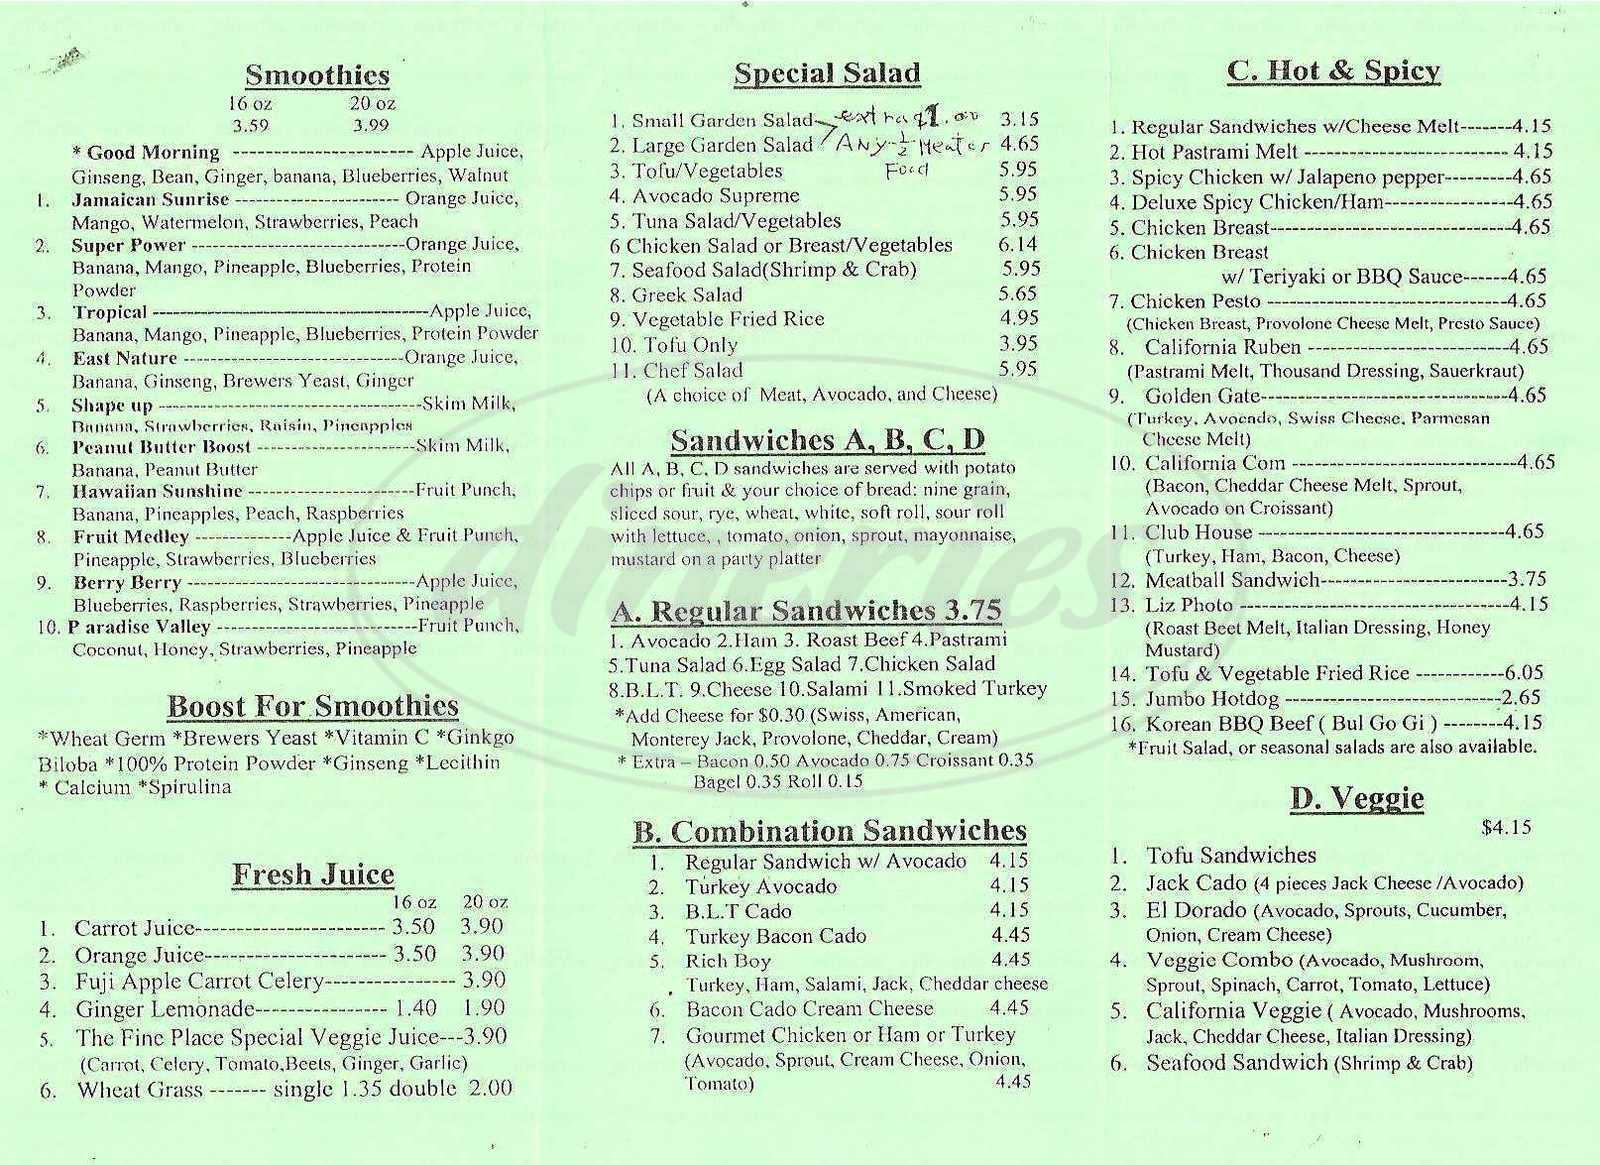 menu for The Fine Place